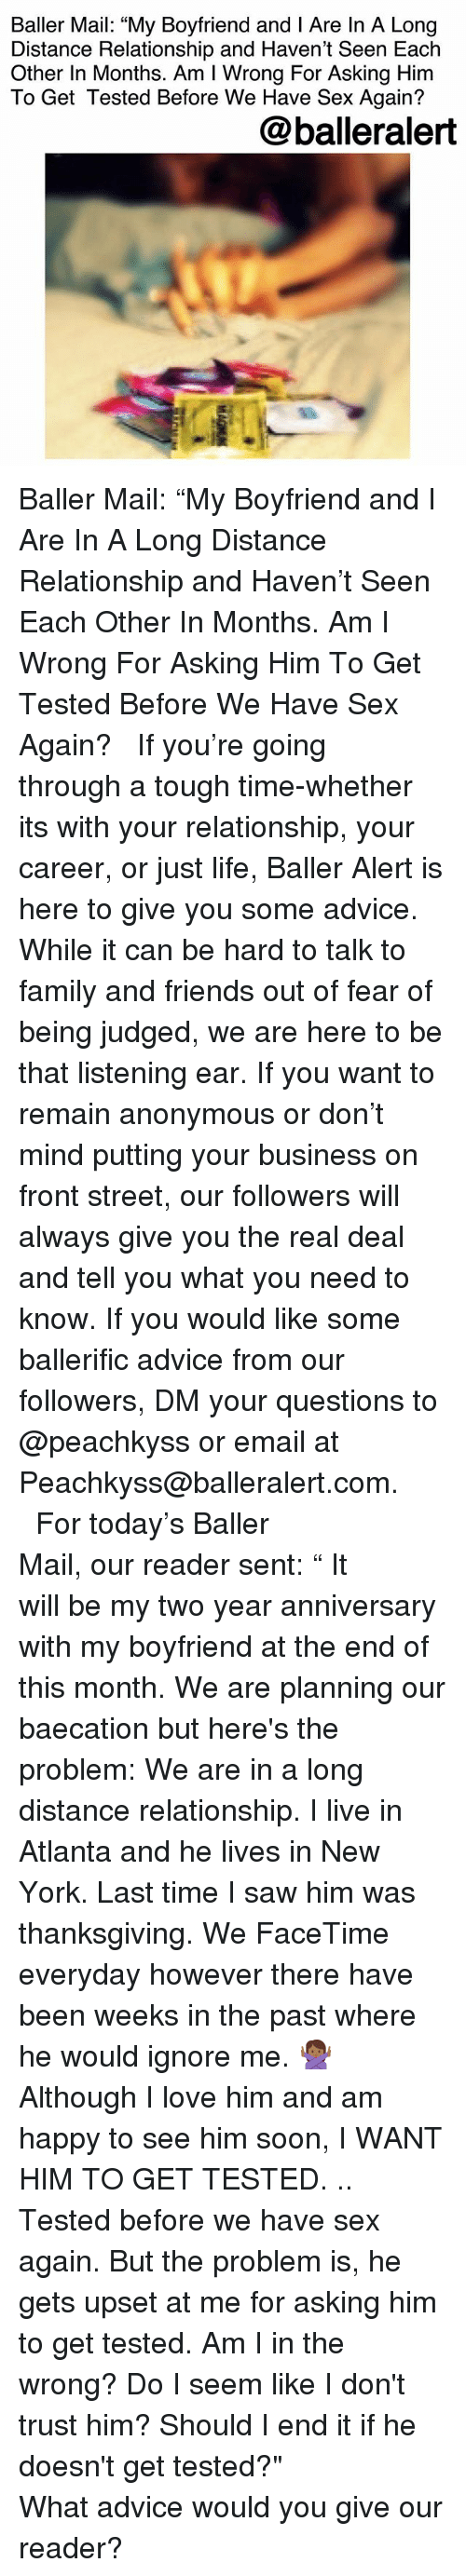 """Advice, Baller Alert, and Facetime: Baller Mail: """"My Boyfriend and I Are In A Long  Distance Relationship and Haven't Seen Each  Other In Months. Am I Wrong For Asking Him  To Get Tested Before We Have Sex Again?  @balleralert Baller Mail: """"My Boyfriend and I Are In A Long Distance Relationship and Haven't Seen Each Other In Months. Am I Wrong For Asking Him To Get Tested Before We Have Sex Again? ⠀⠀⠀⠀⠀⠀⠀ ⠀⠀⠀⠀⠀⠀⠀ If you're going through a tough time-whether its with your relationship, your career, or just life, Baller Alert is here to give you some advice. While it can be hard to talk to family and friends out of fear of being judged, we are here to be that listening ear. If you want to remain anonymous or don't mind putting your business on front street, our followers will always give you the real deal and tell you what you need to know. If you would like some ballerific advice from our followers, DM your questions to @peachkyss or email at Peachkyss@balleralert.com. ⠀⠀⠀⠀⠀⠀⠀ ⠀⠀⠀⠀⠀⠀⠀ For today's Baller Mail, our reader sent:⠀⠀⠀⠀⠀⠀⠀ """" It will be my two year anniversary with my boyfriend at the end of this month. We are planning our baecation but here's the problem: We are in a long distance relationship. I live in Atlanta and he lives in New York. Last time I saw him was thanksgiving. We FaceTime everyday however there have been weeks in the past where he would ignore me. 🙅🏾 Although I love him and am happy to see him soon, I WANT HIM TO GET TESTED. .. Tested before we have sex again. But the problem is, he gets upset at me for asking him to get tested. Am I in the wrong? Do I seem like I don't trust him? Should I end it if he doesn't get tested?"""" ⠀⠀⠀⠀⠀⠀⠀ ⠀⠀⠀⠀⠀⠀⠀ What advice would you give our reader?"""